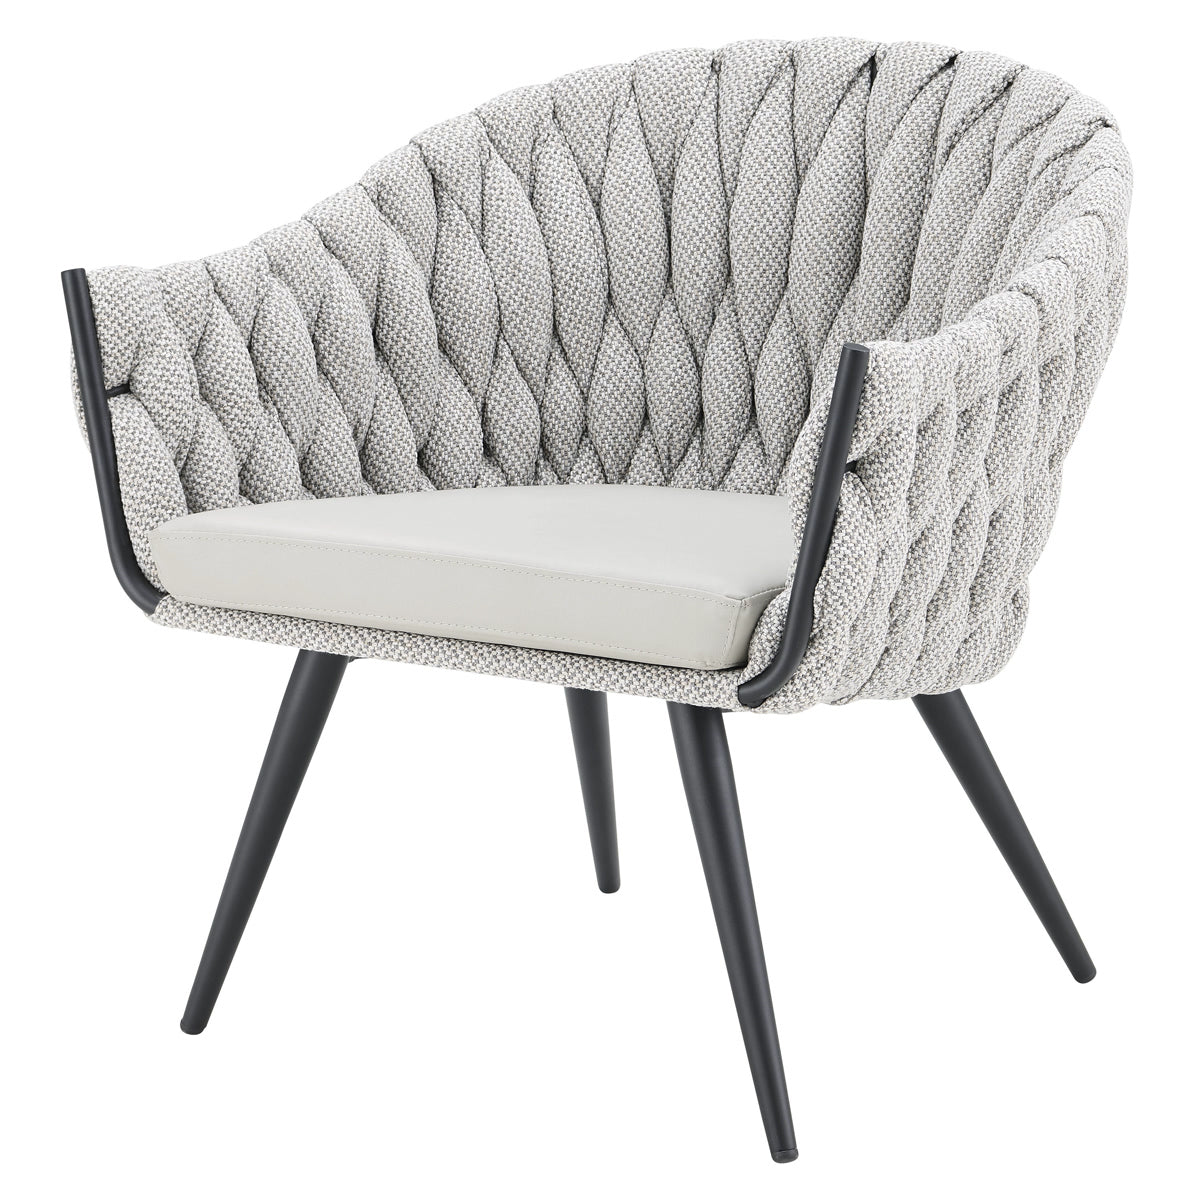 Fabian Accent Chair by New Pacific Direct - 1240007-5006